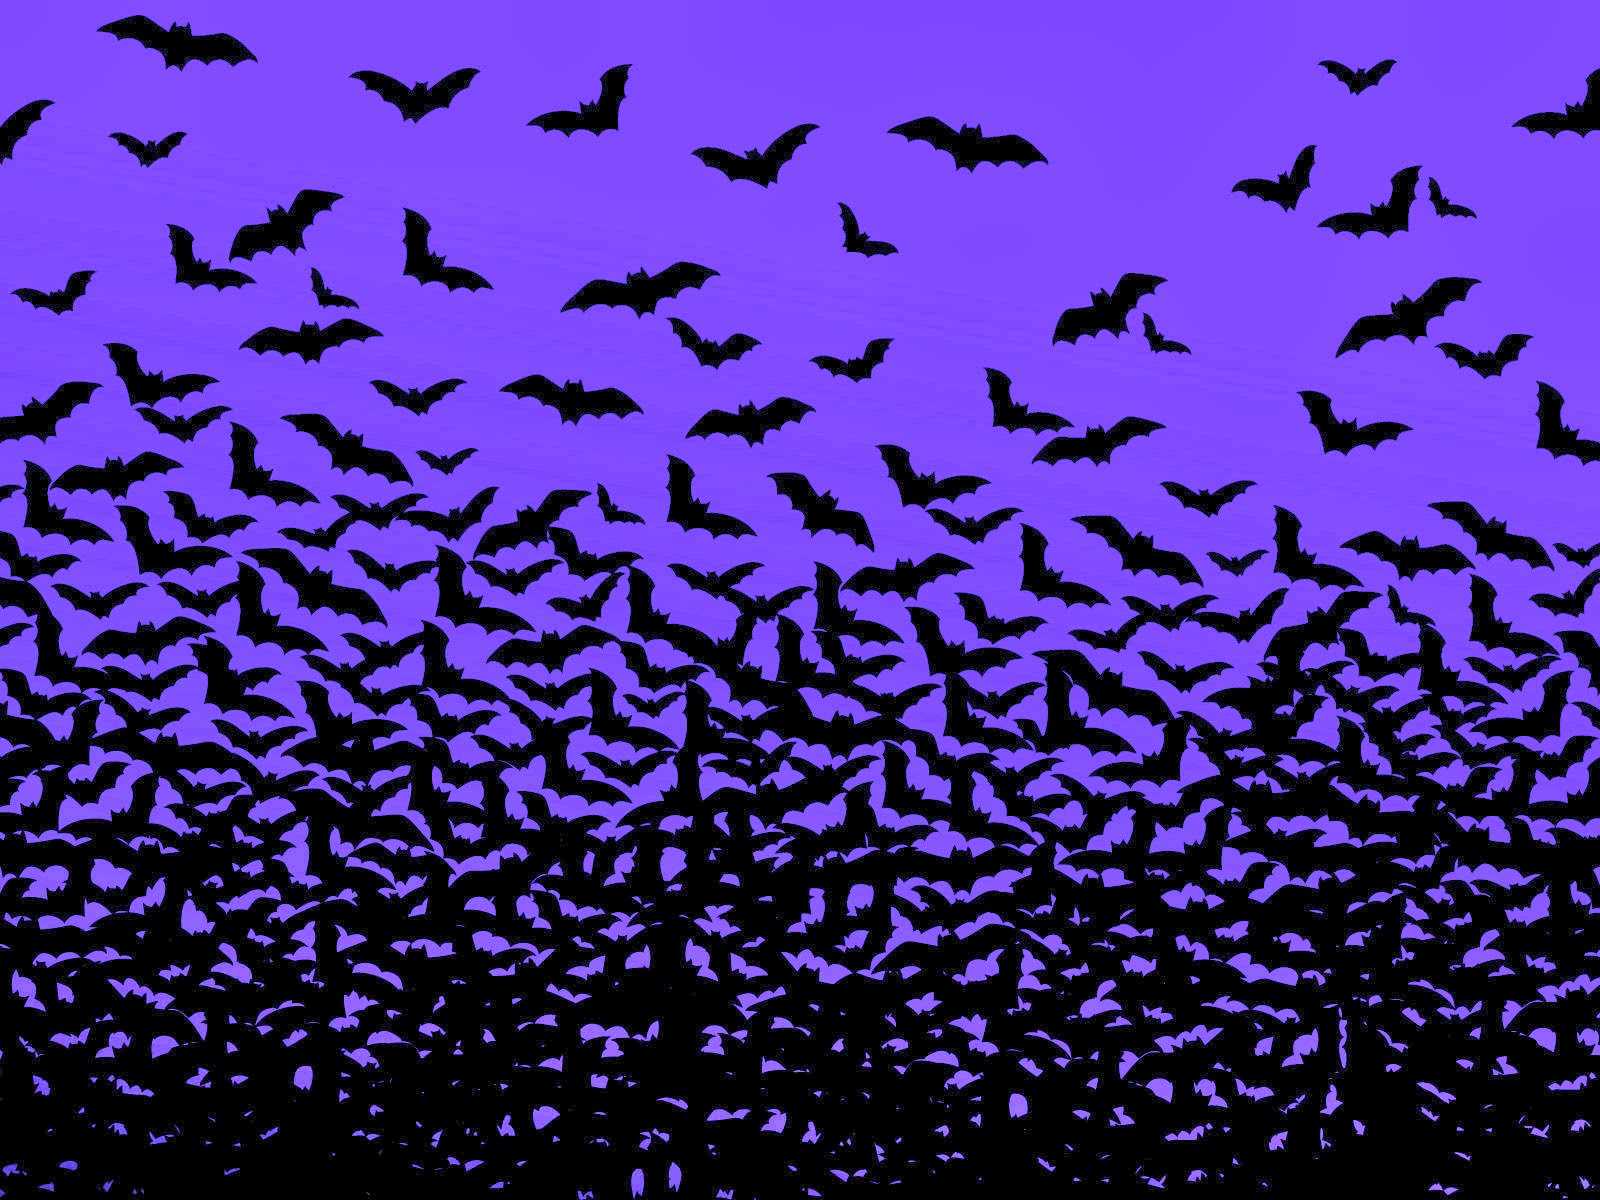 By Josephina Winsett PC.53: Bats Images&Images